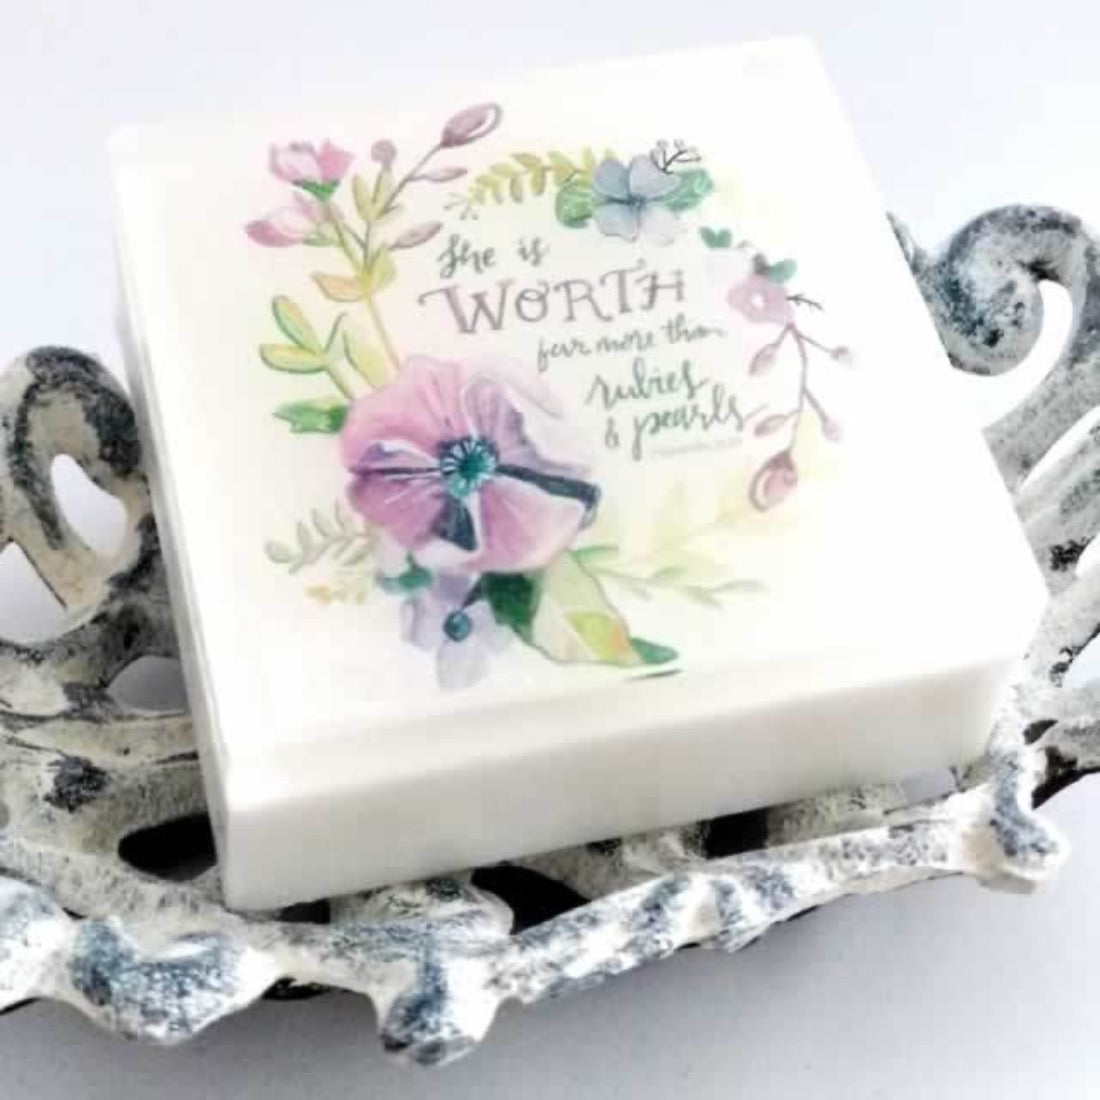 Ecomodbox Soap - A Sweet Friendship Refreshes the Soul - Prov 27:9